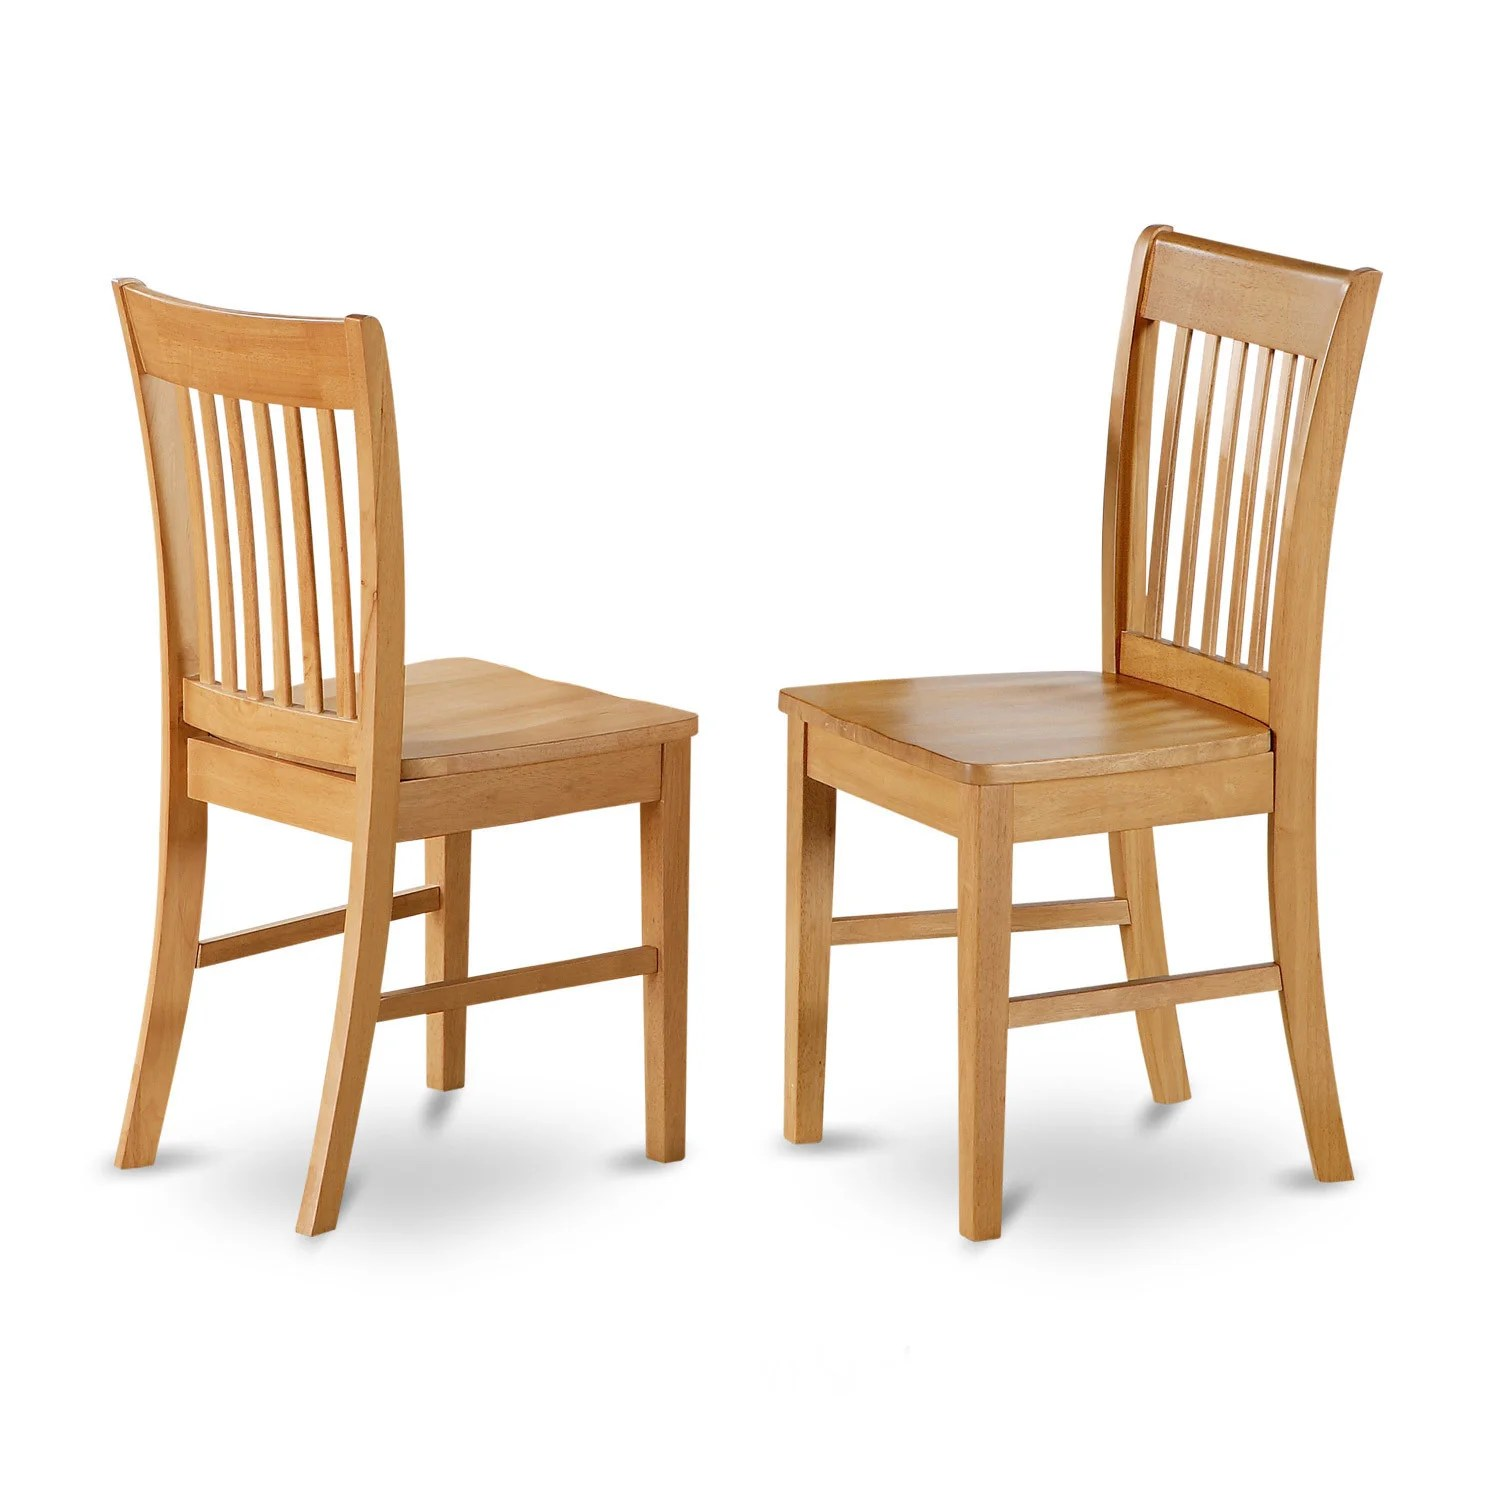 Copper Dining Chairs Details About Copper Grove Quince Kitchen Dining Chair Set Of 2